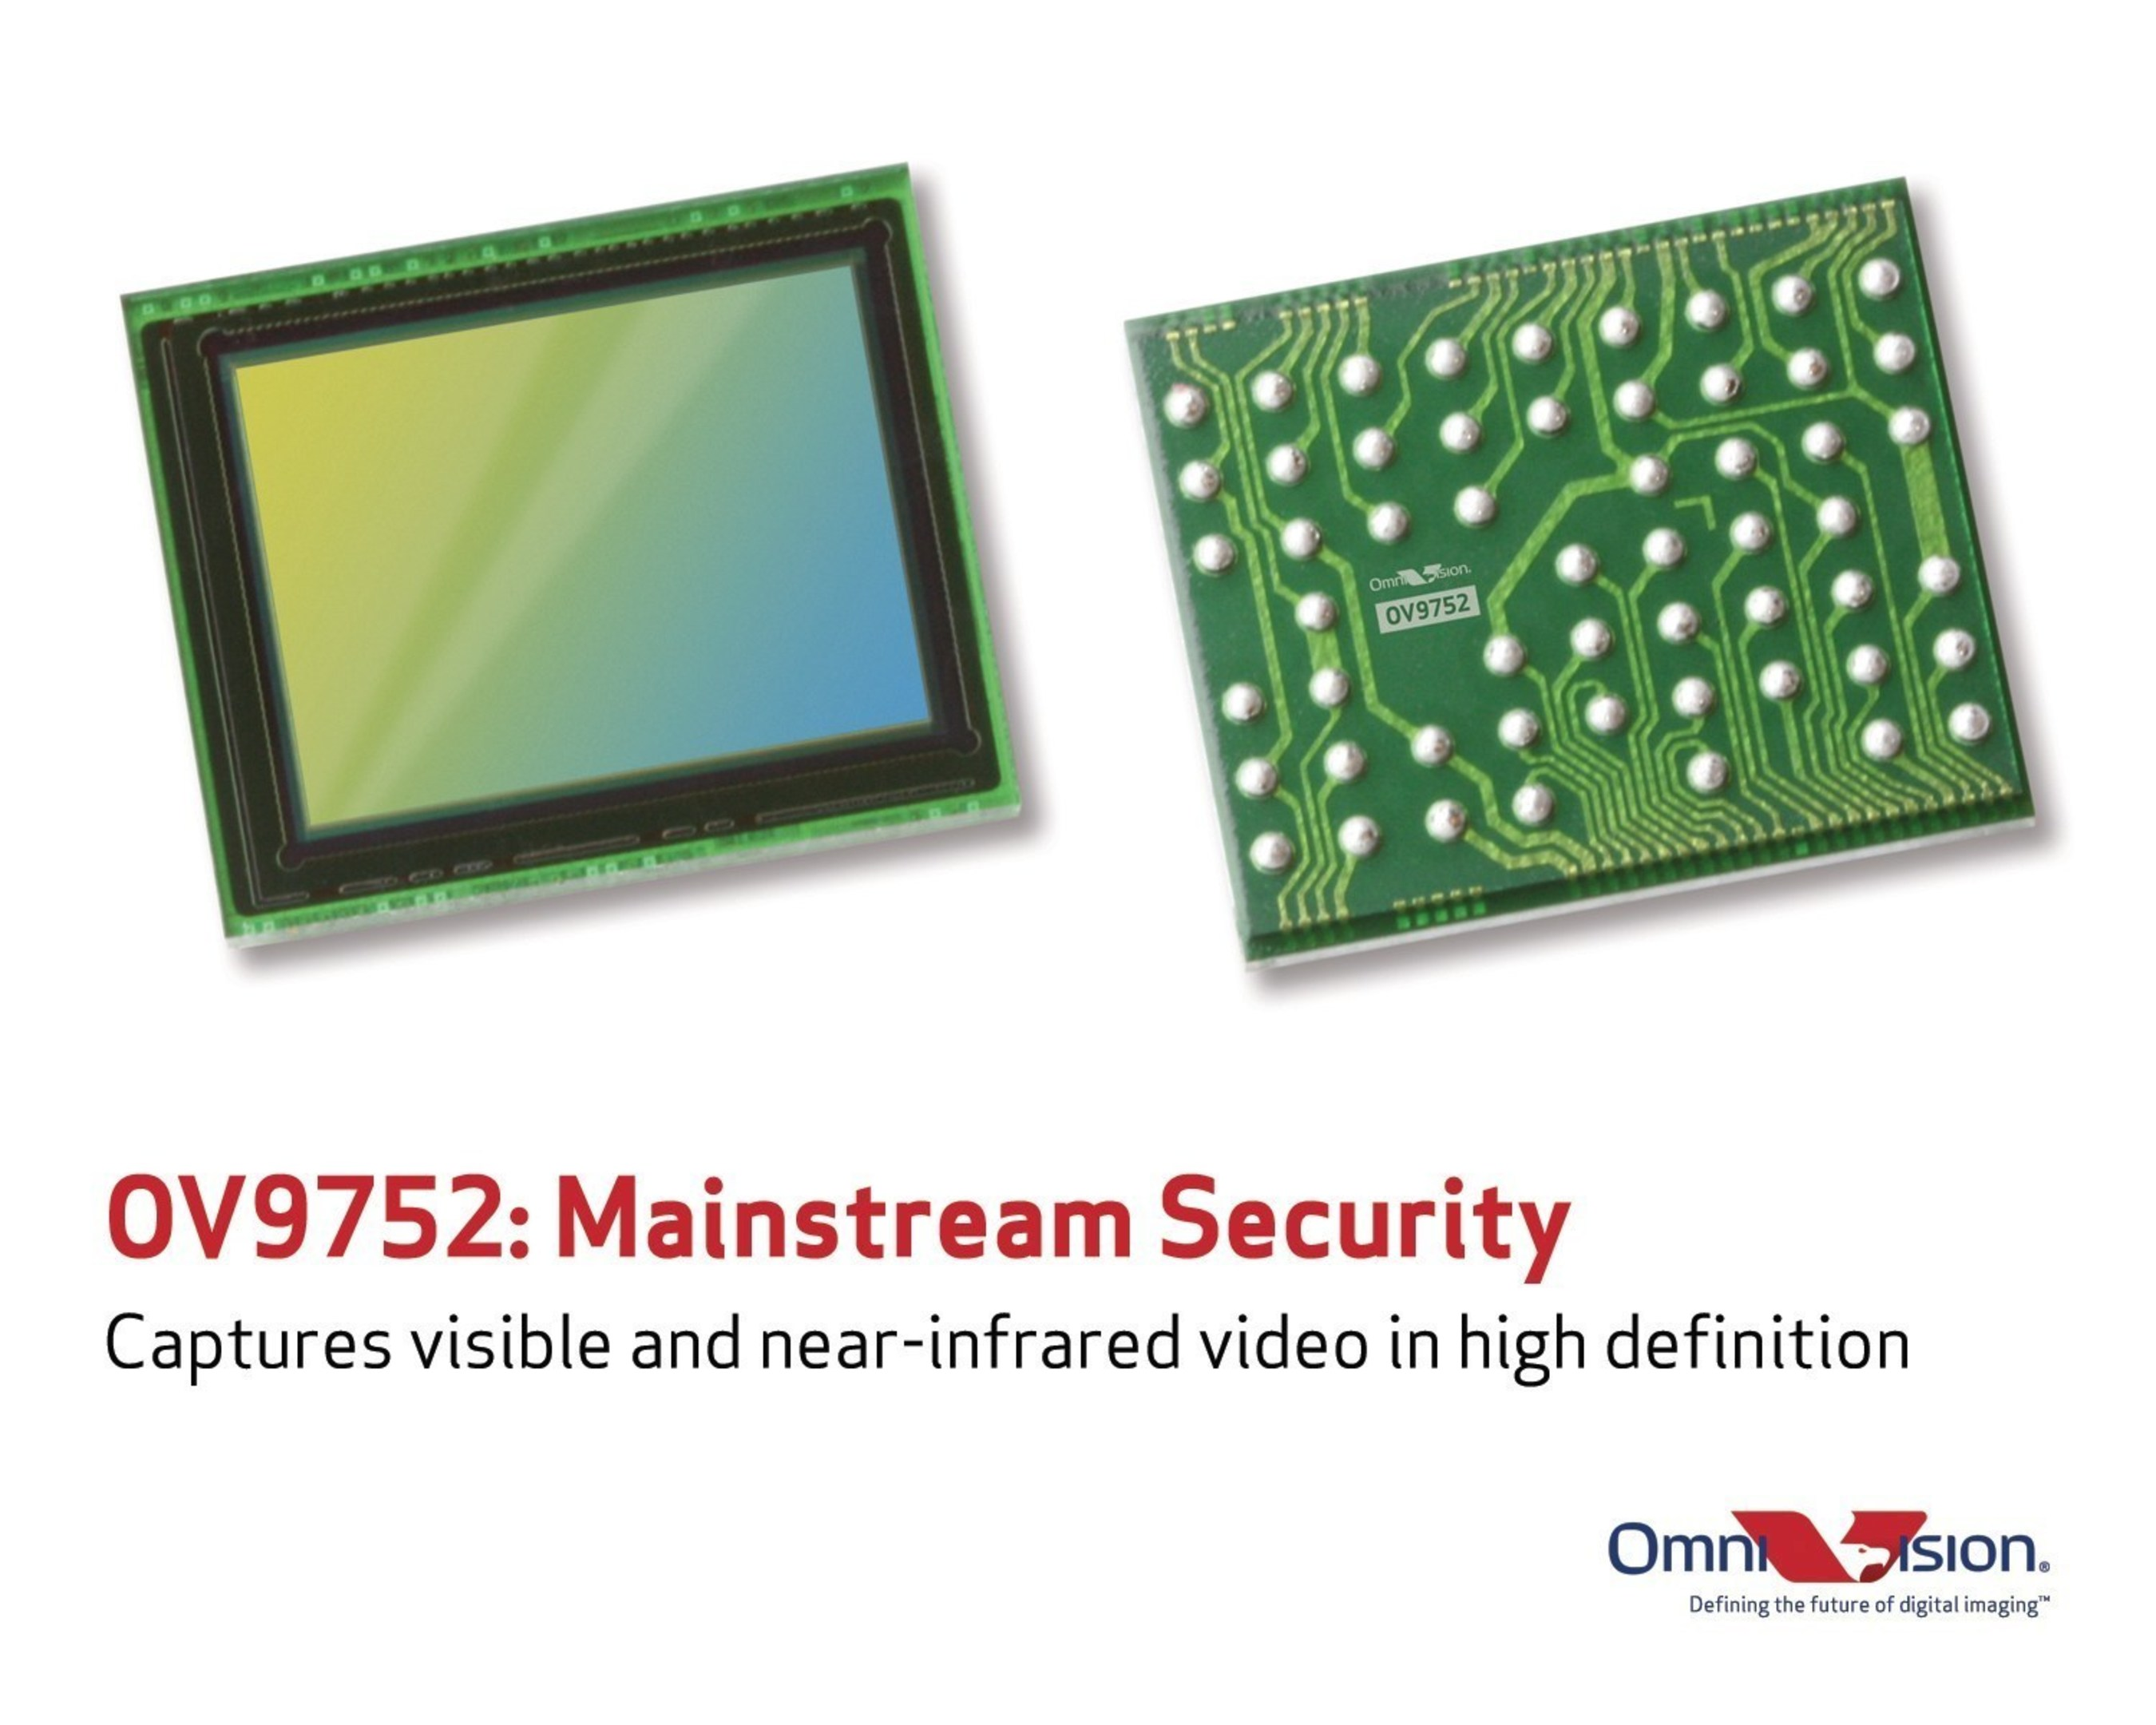 OmniVision's OV9752 CameraChip(TM) sensor captures visible and infrared HD video.